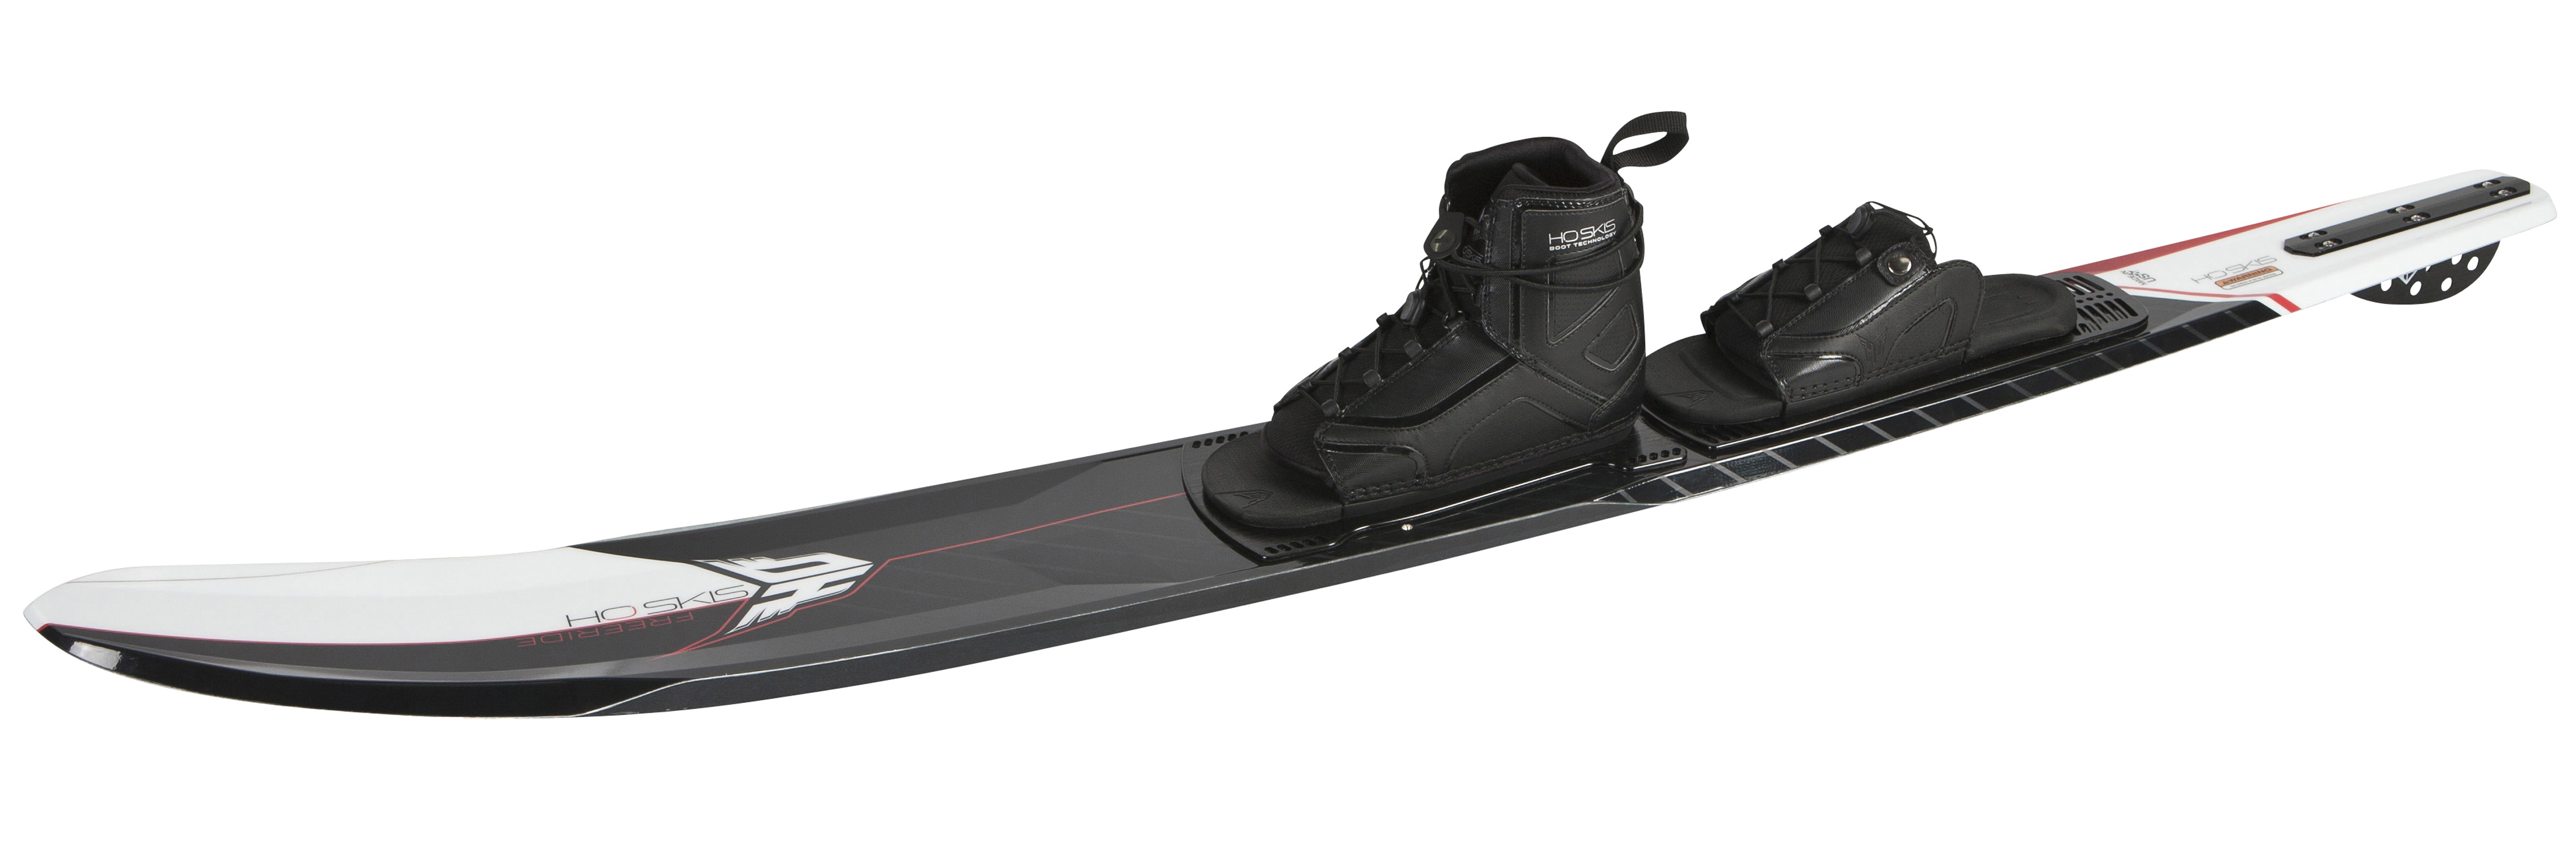 Surf Carve your own pathKey Features of the HO Freeride Slalom Waterski 67 w/ Basis & Artp Boots: Clean Edge Technology for 50% less drag than conventional skis. Allows for comfortable skiing at wakeboard boat speeds Carve Rails for amazing edge hold when laying down powerful arcs Carve Flex for active rocker carving Hybrid Sidewall design – speed where you want it and support where you need it. Shark Fin – surf inspired design for clean cuts and unmatched hold in chop - $449.99